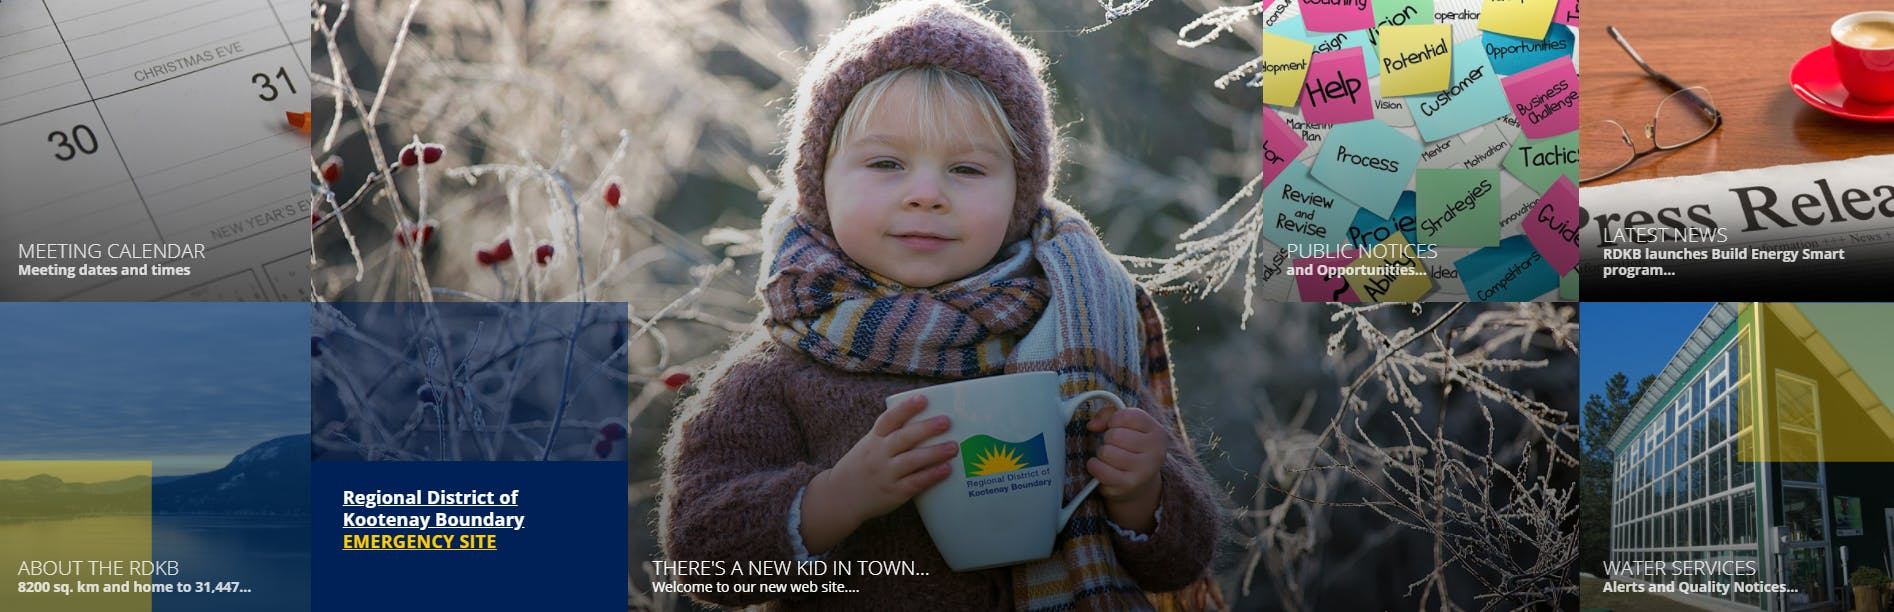 website banner showing girl wearing dusty rose toque and sweater with matching plaid scarf in frosty landscape holding a large mug of hot chocolate and various translucent squares with links to website information.